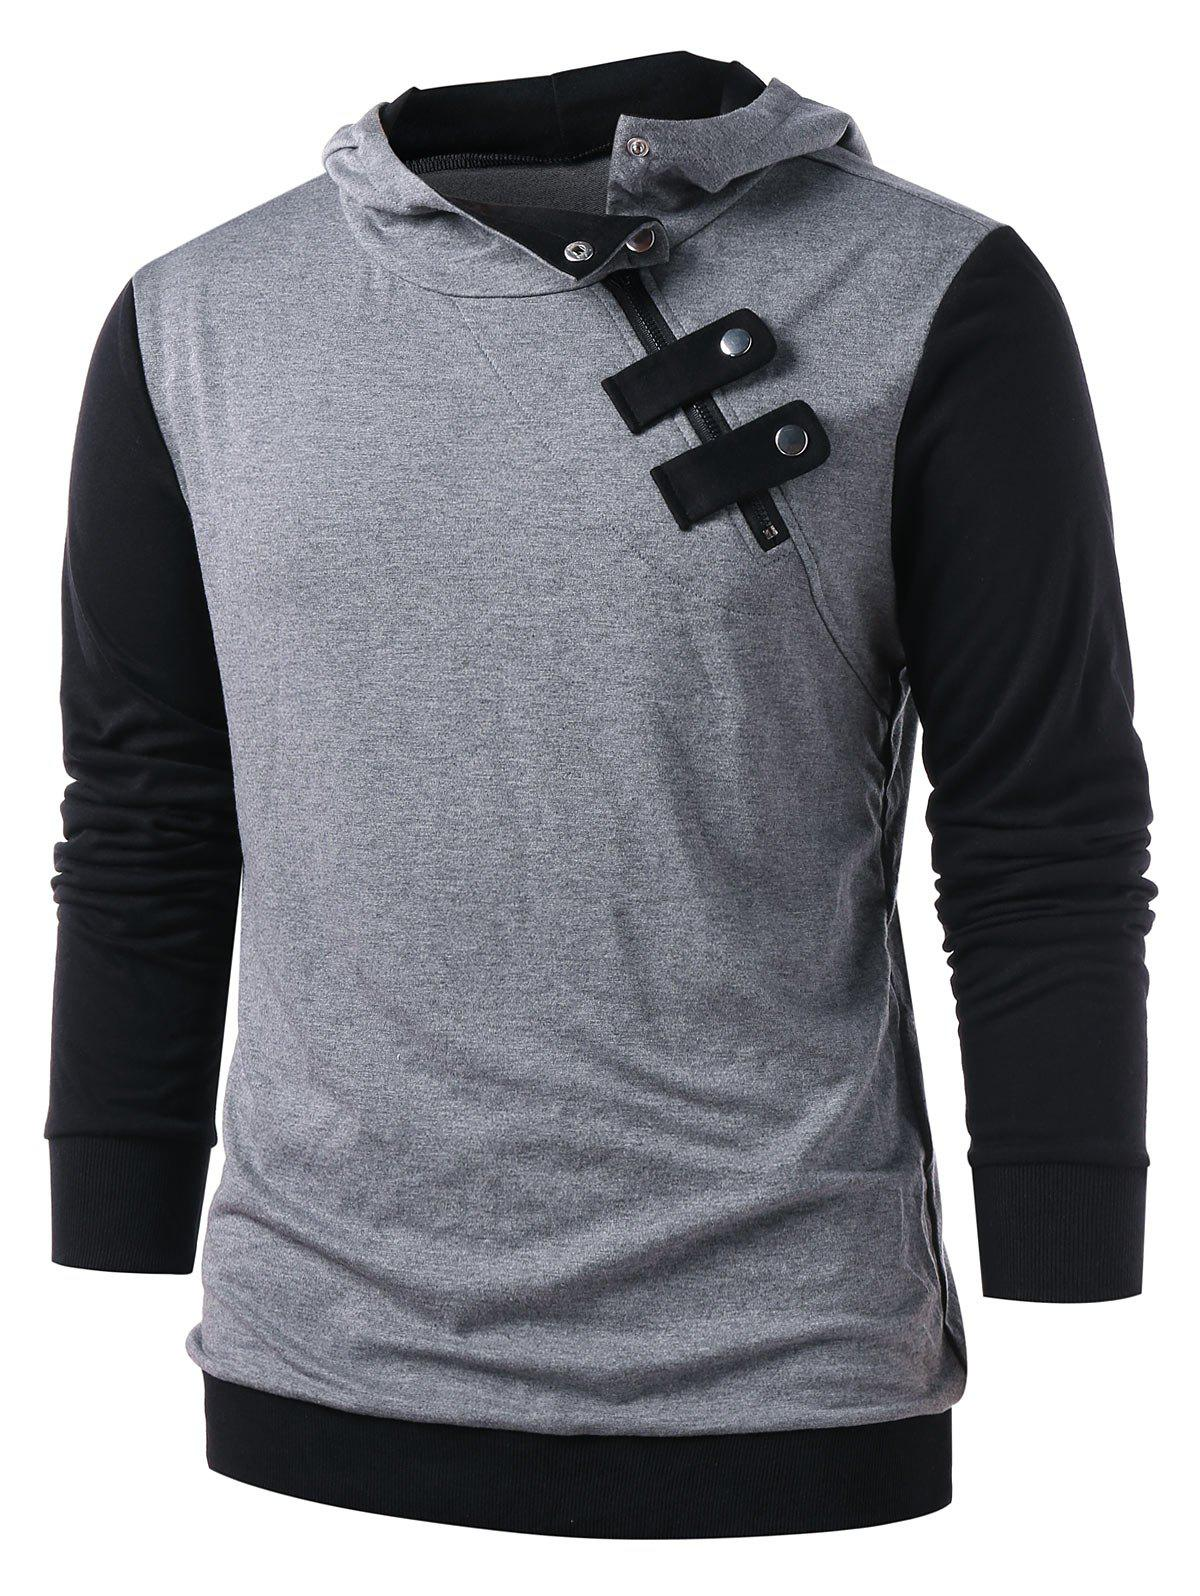 Panel Snap Button Embellished Casual Hoodie - GRAY 2XL